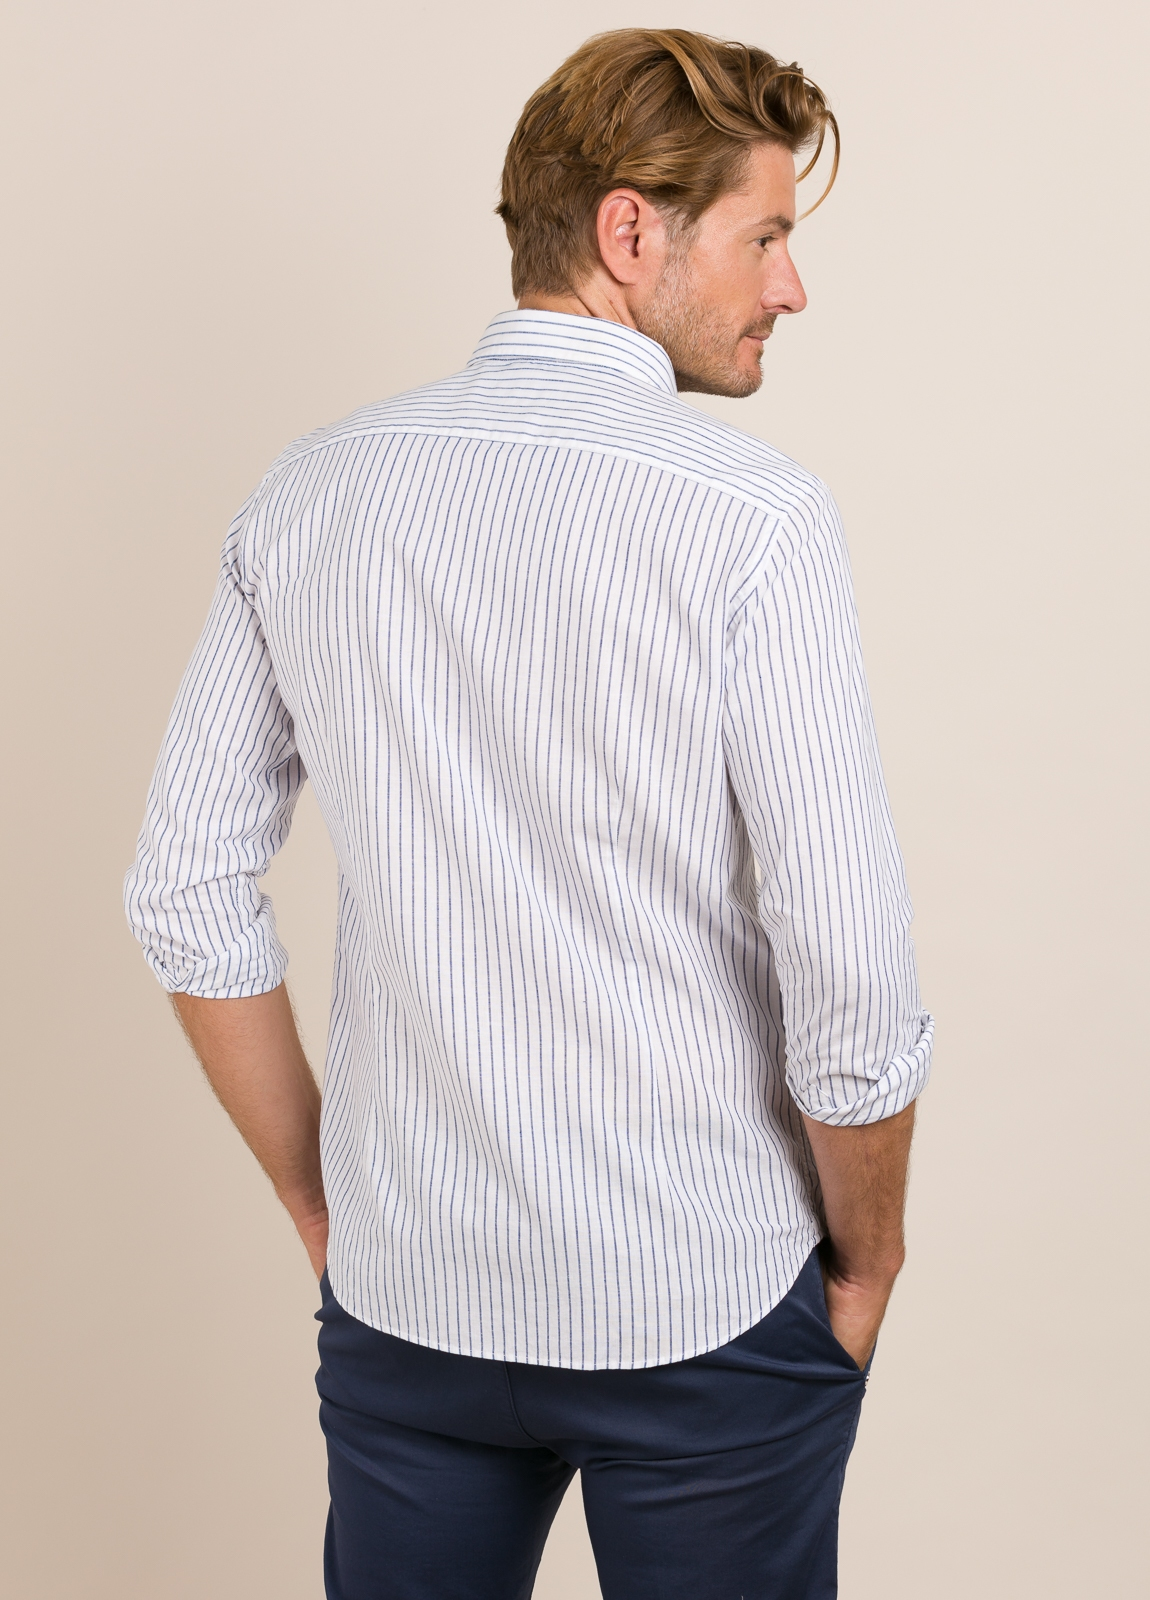 Camisa Casual Wear FUREST COLECCIÓN slim fit fil blanco. - Ítem2